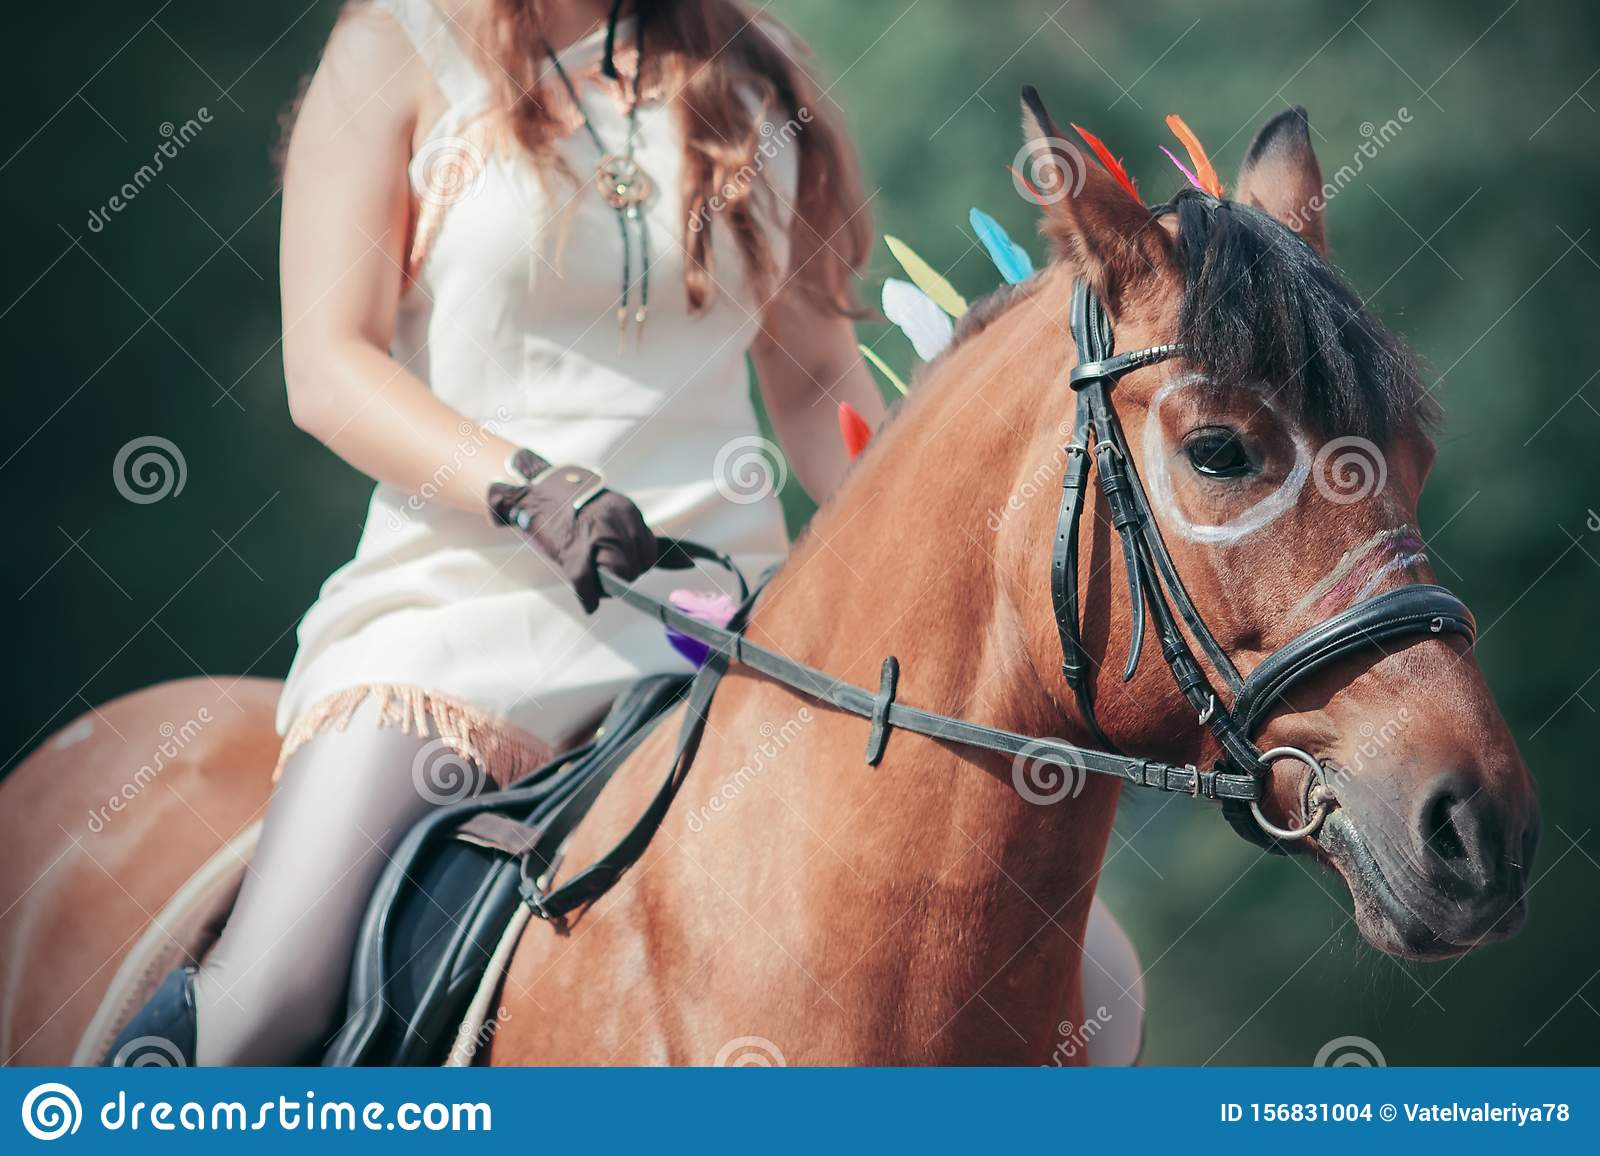 156 Horse Indian Painted Photos Free Royalty Free Stock Photos From Dreamstime